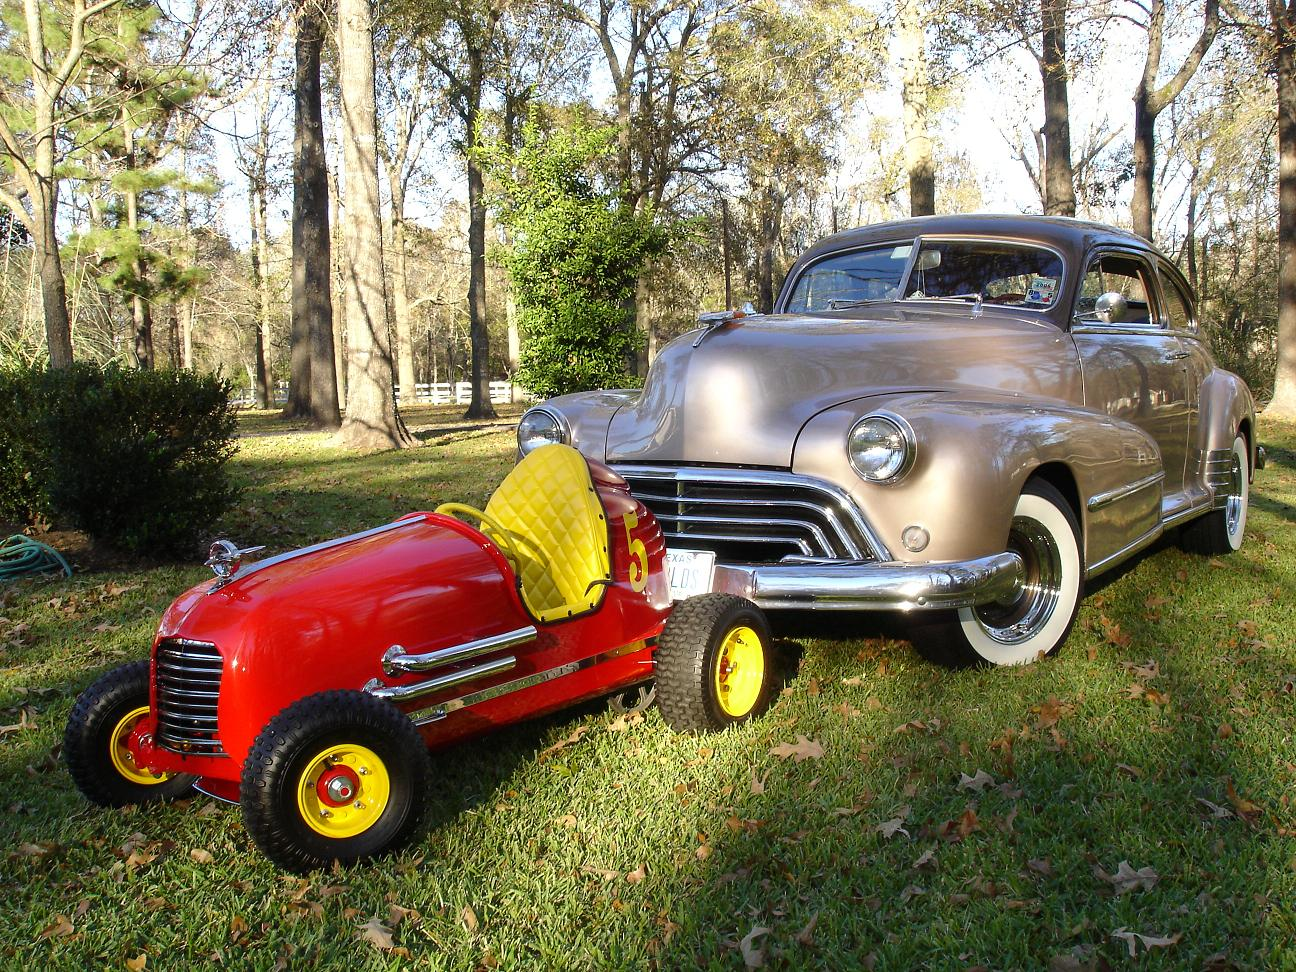 Click image for larger version  Name:After Restoration with my 48 Olds a.JPG Views:73 Size:420.5 KB ID:58852